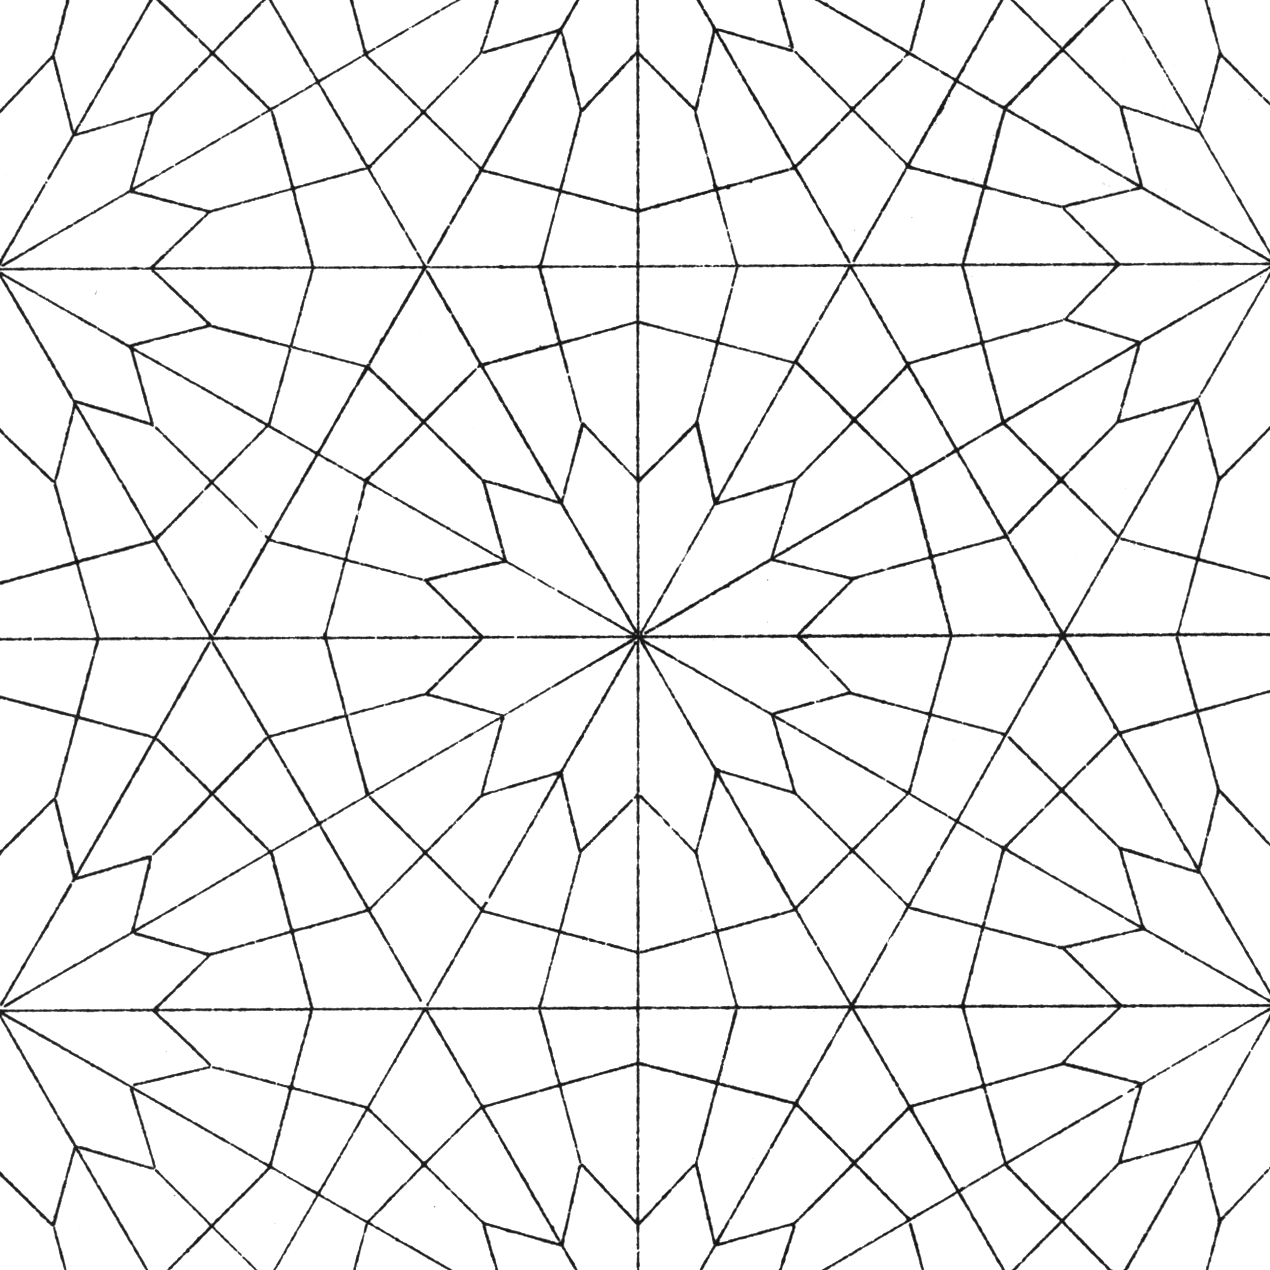 1270x1270 Related Searches For Geometric Patterns To Color, Islamic